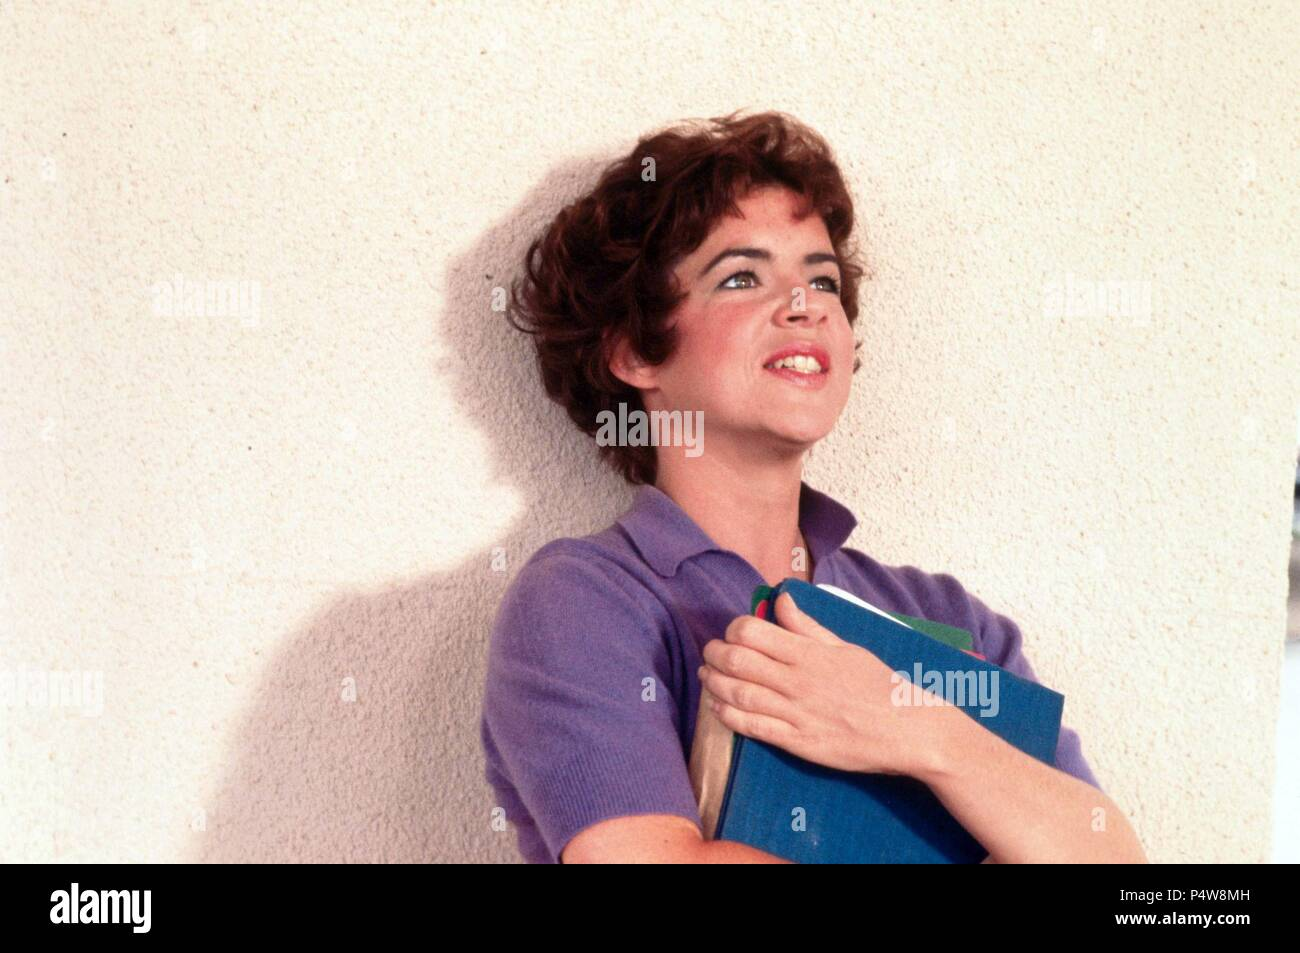 Original Film Title: GREASE.  English Title: GREASE.  Film Director: RANDAL KLEISER.  Year: 1978.  Stars: STOCKARD CHANNING. Credit: PARAMOUNT PICTURES / Album - Stock Image